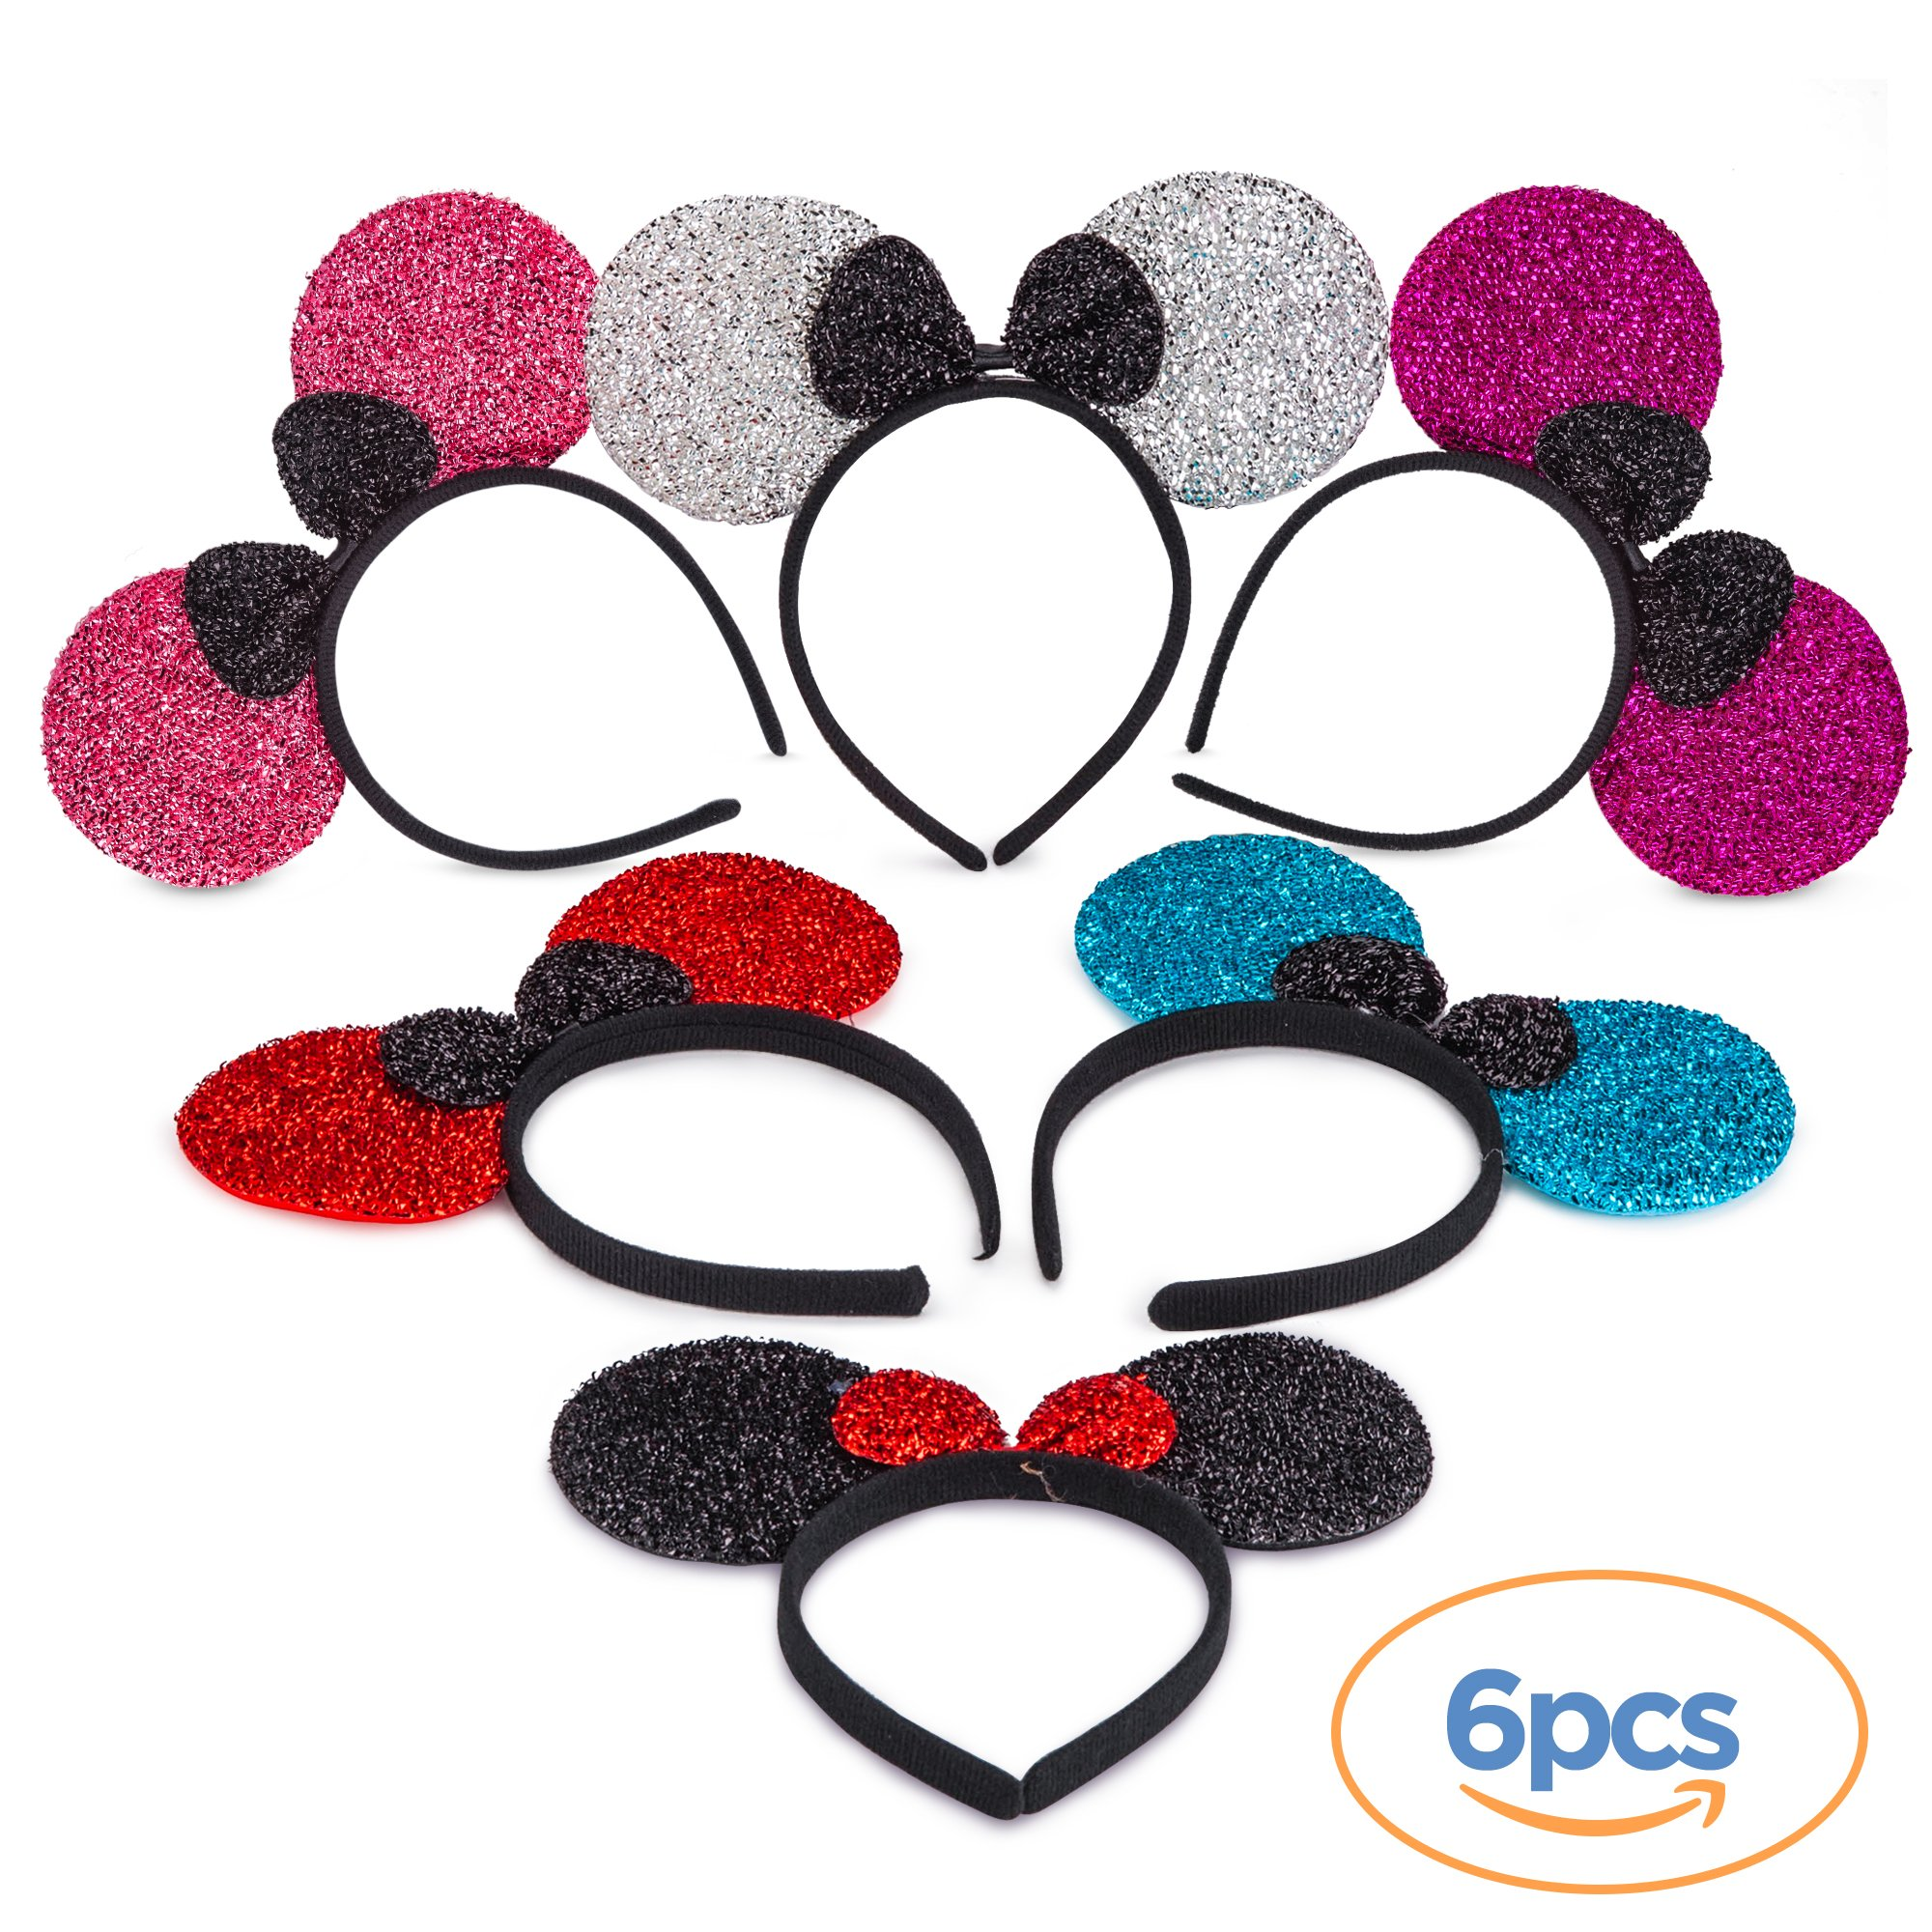 Flexible Minnie Mouse Ears - Perfect for Costume Accessories and Kids Parties - Pack of 6, Solid Black and Red Bow